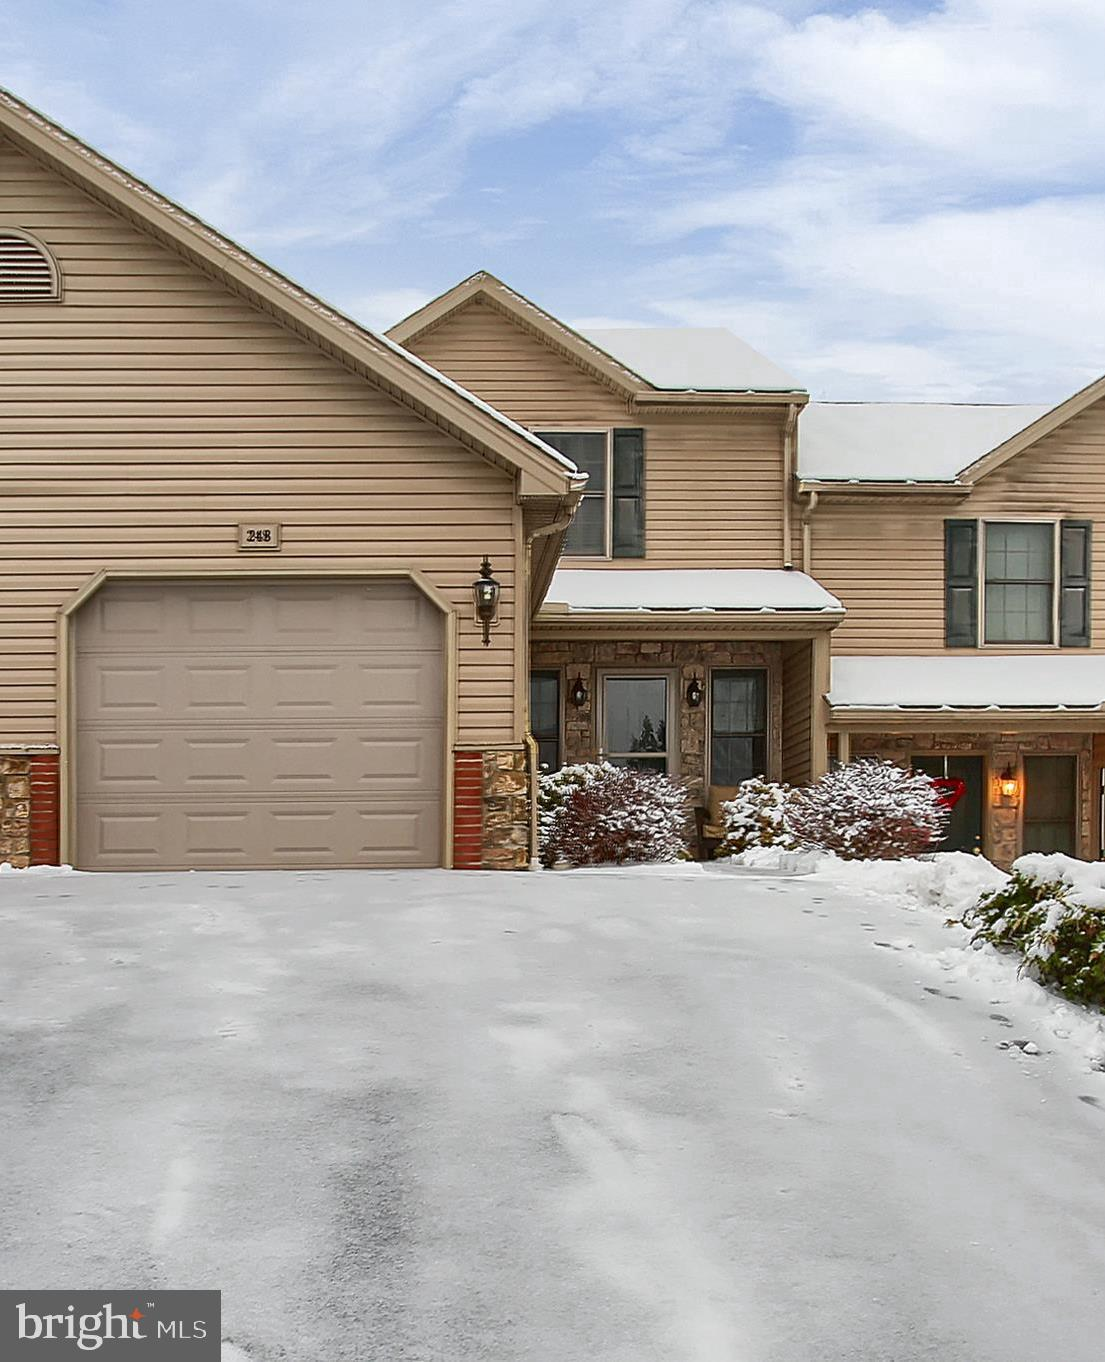 248 DEER TRAIL, MARYSVILLE, PA 17053